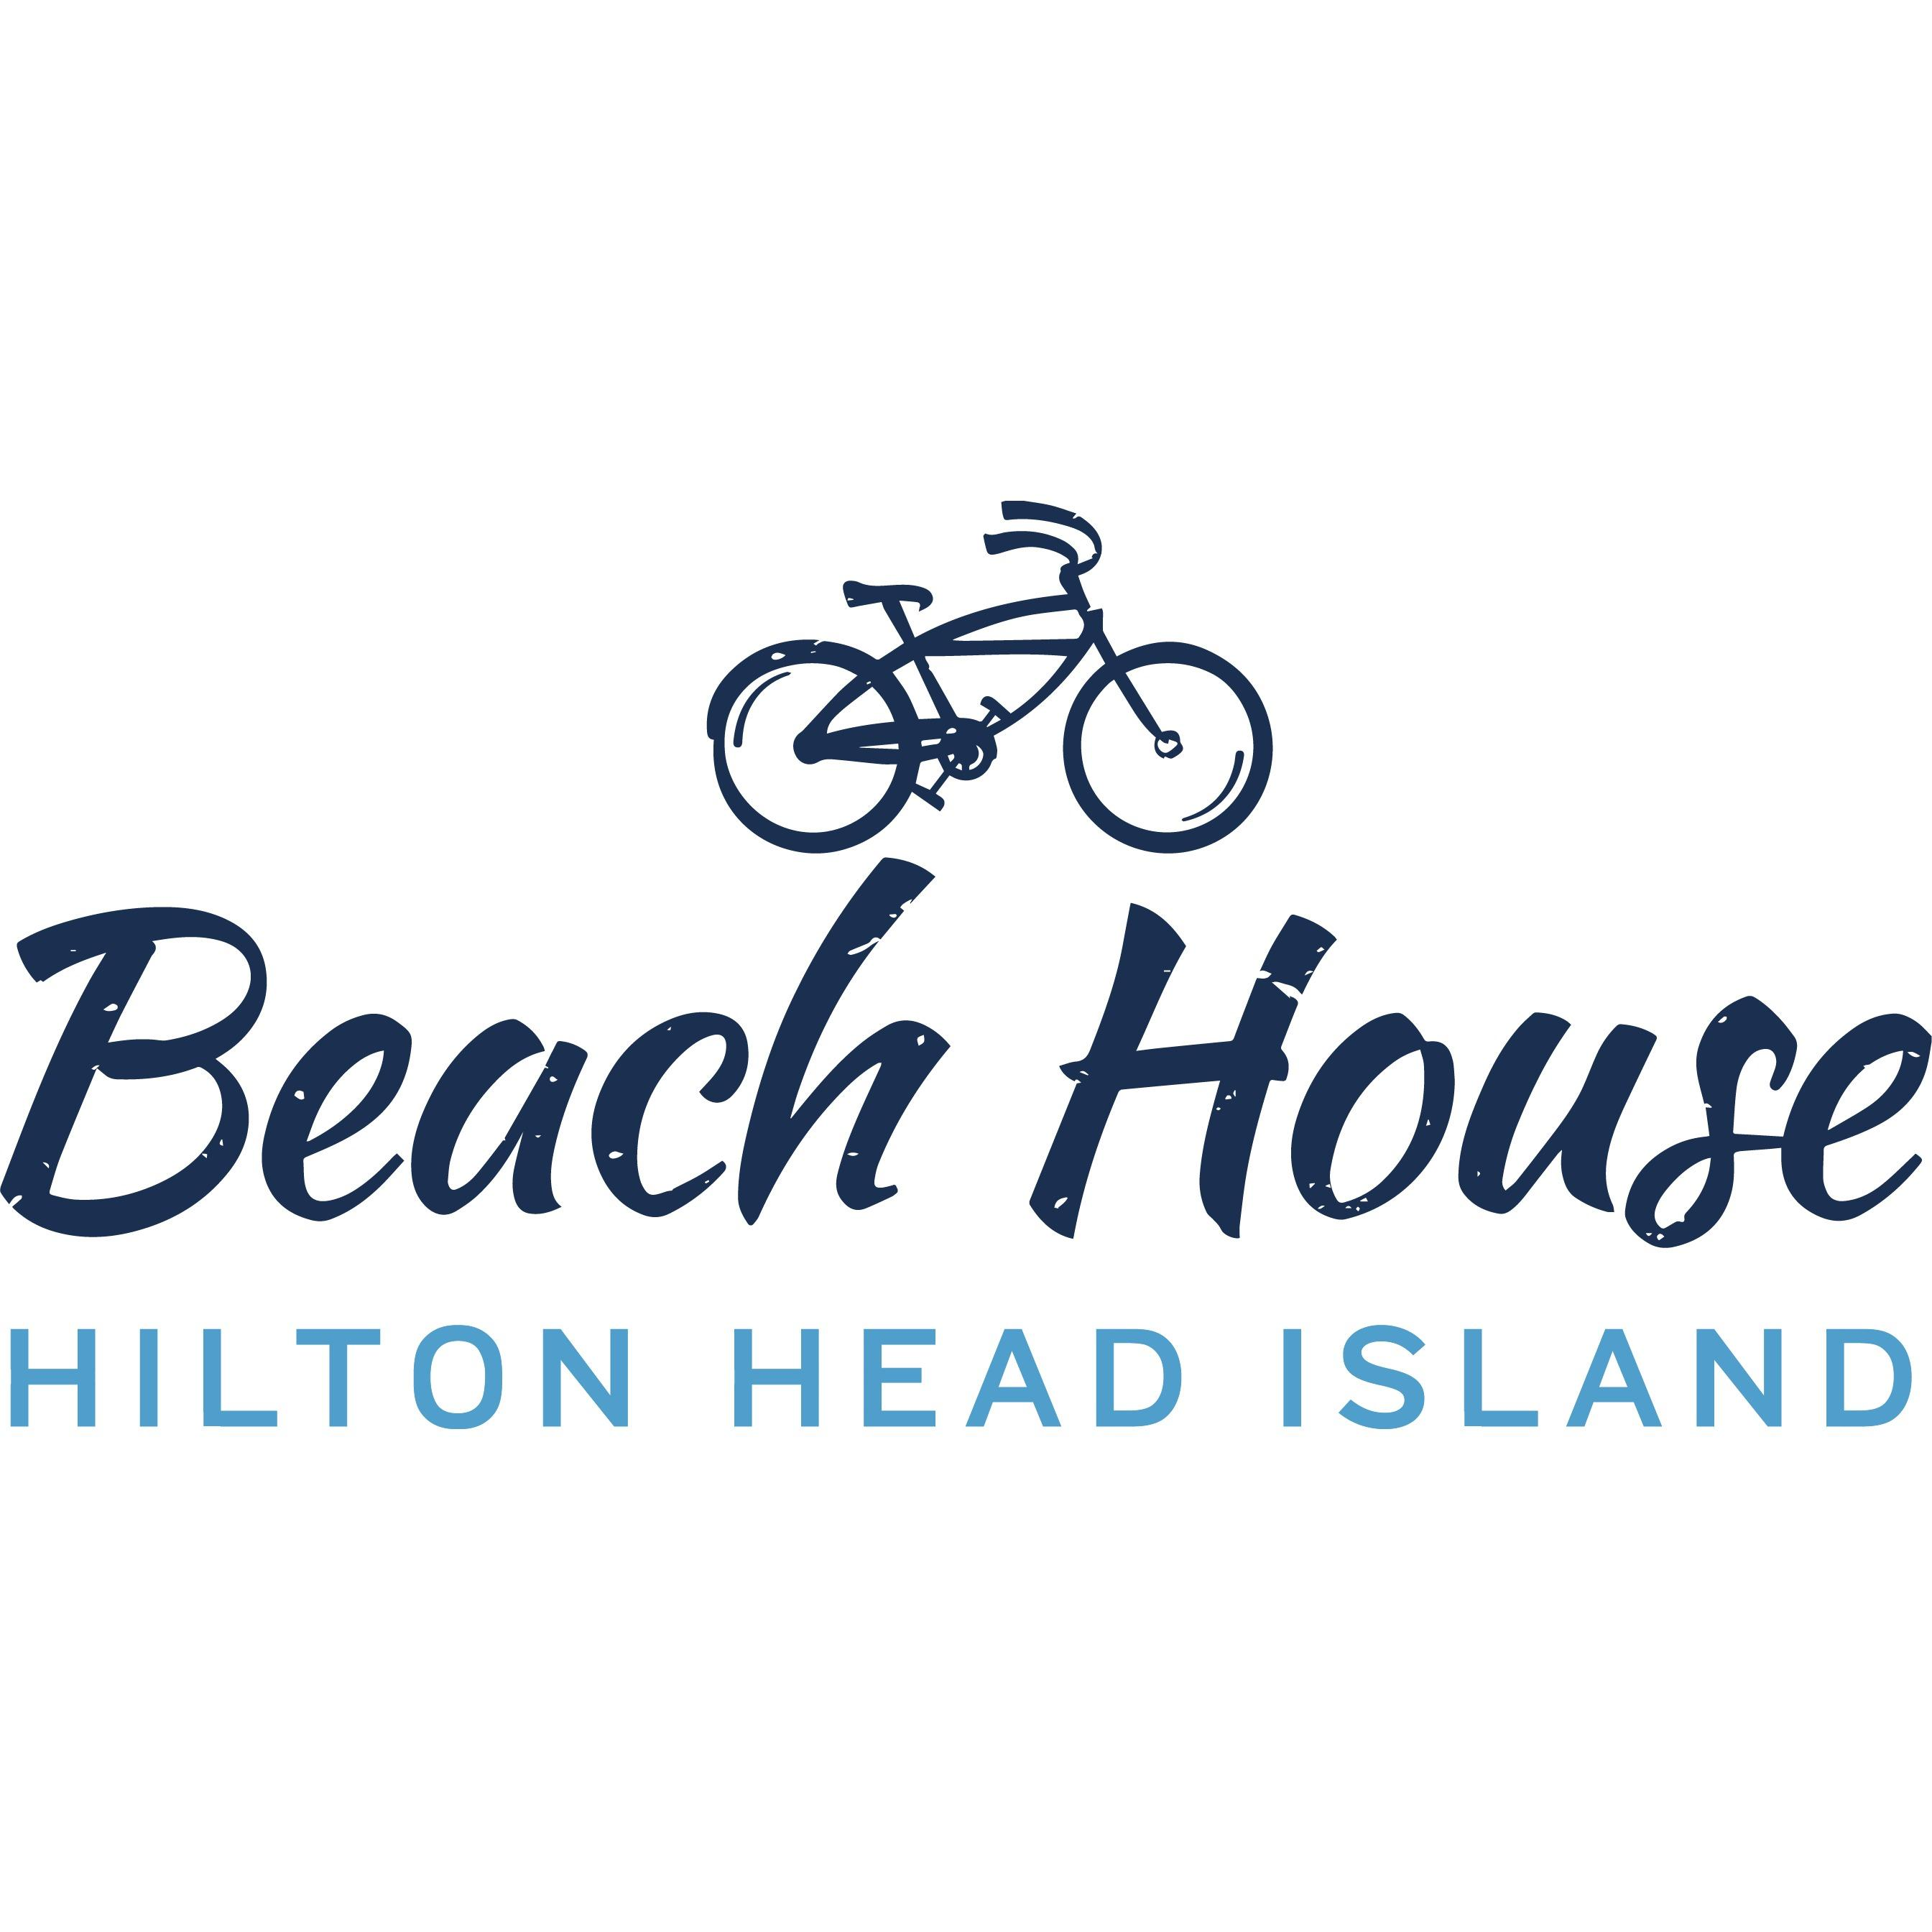 Beach House, Hilton Head Island